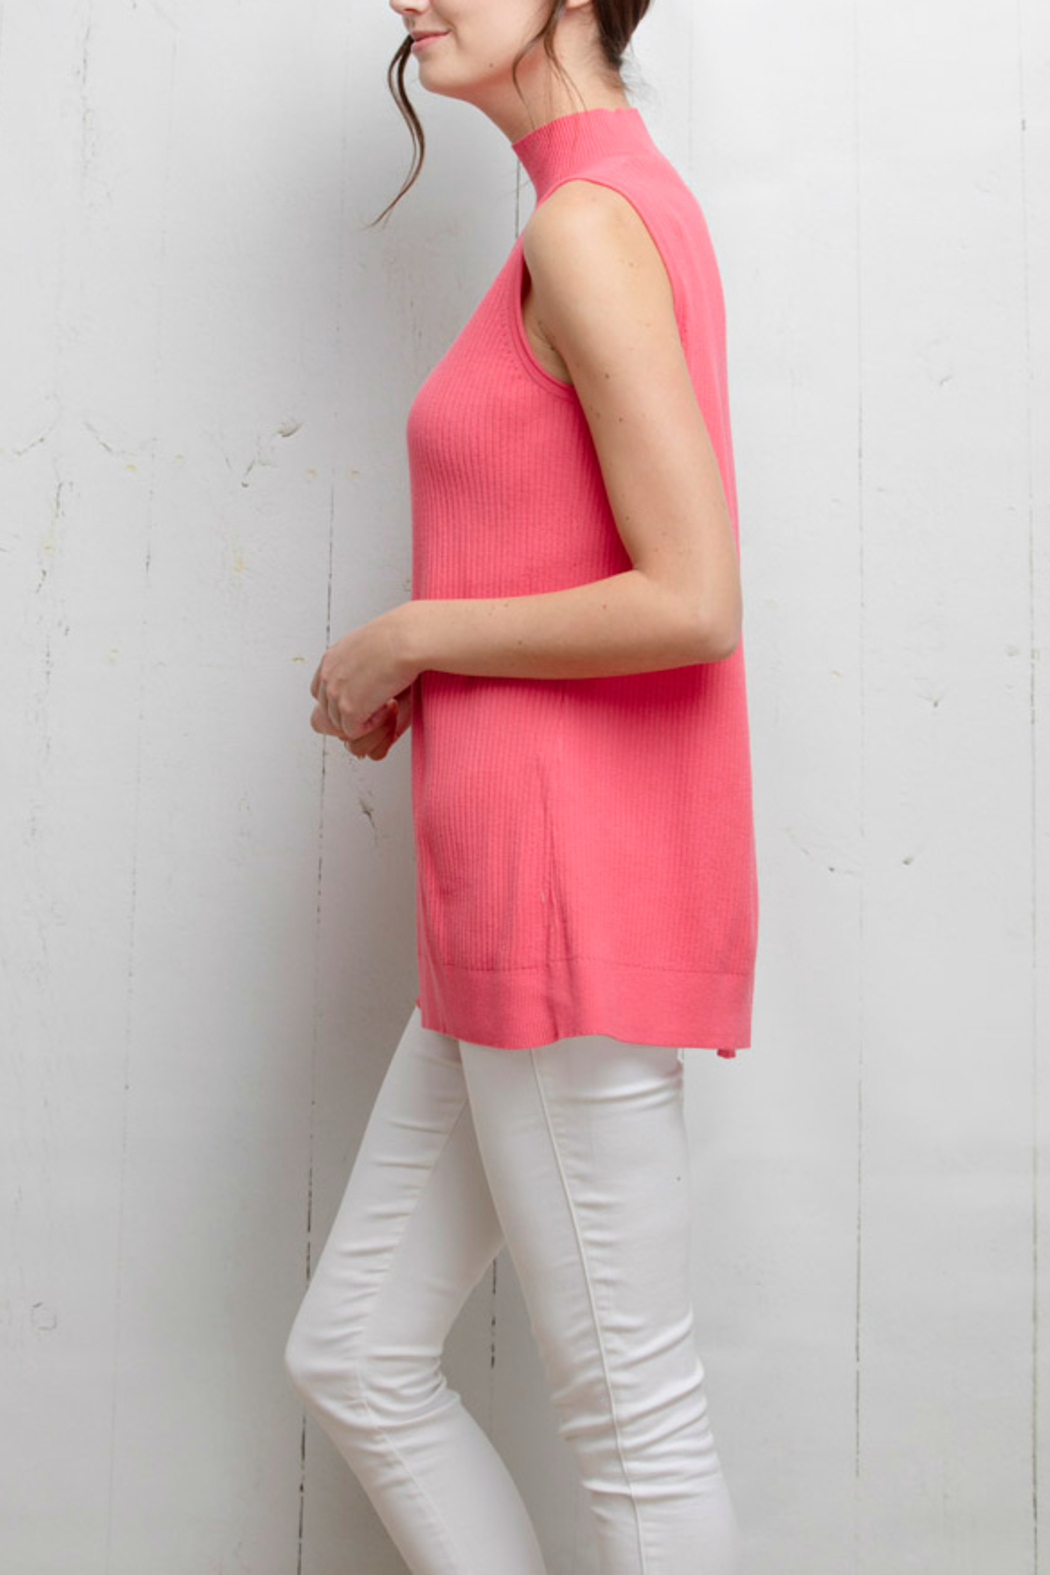 Tyler Boe Pink Sleeveless Sweater Top - Front Full Image